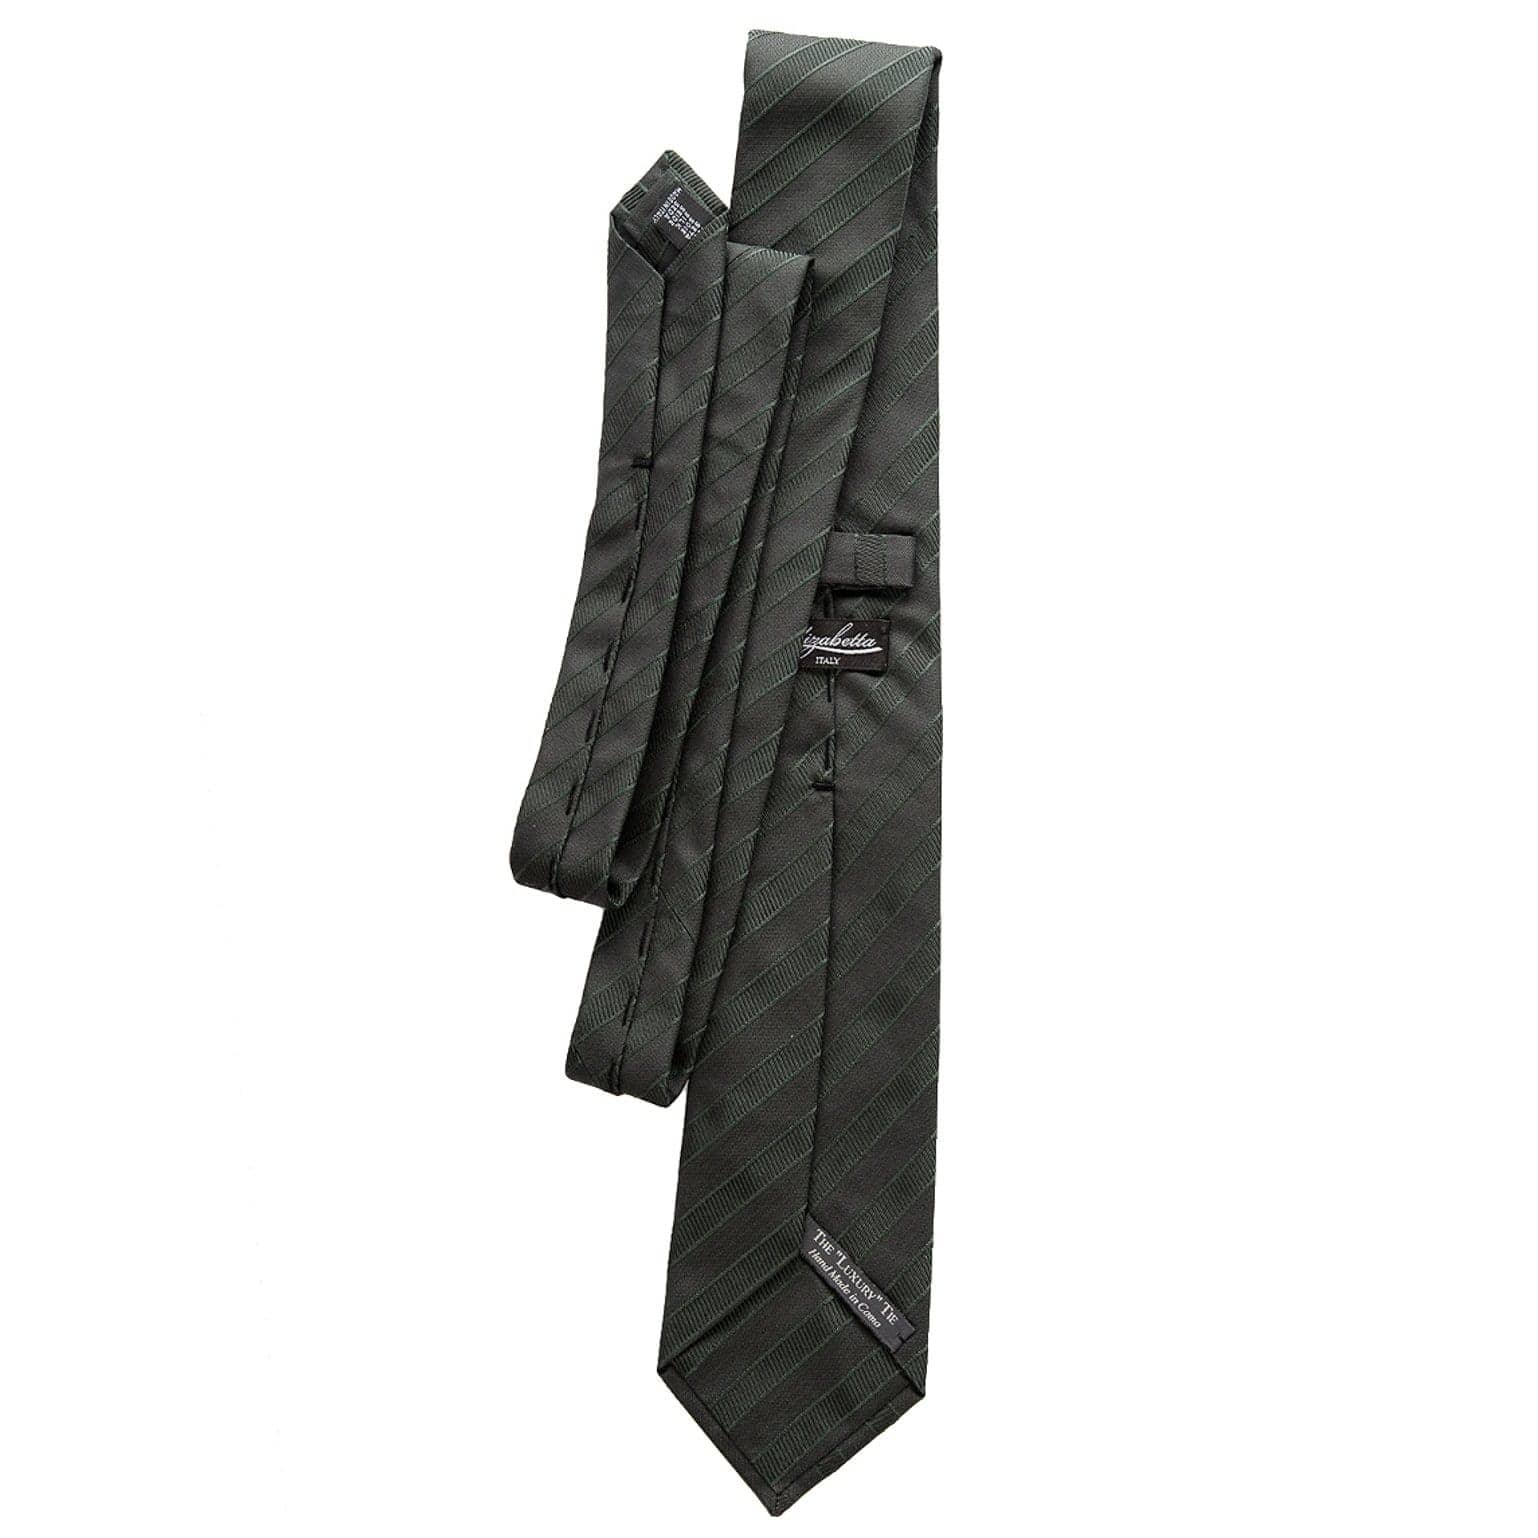 Extra Long Forest Green Tie - 3 Fold - Made in Italy